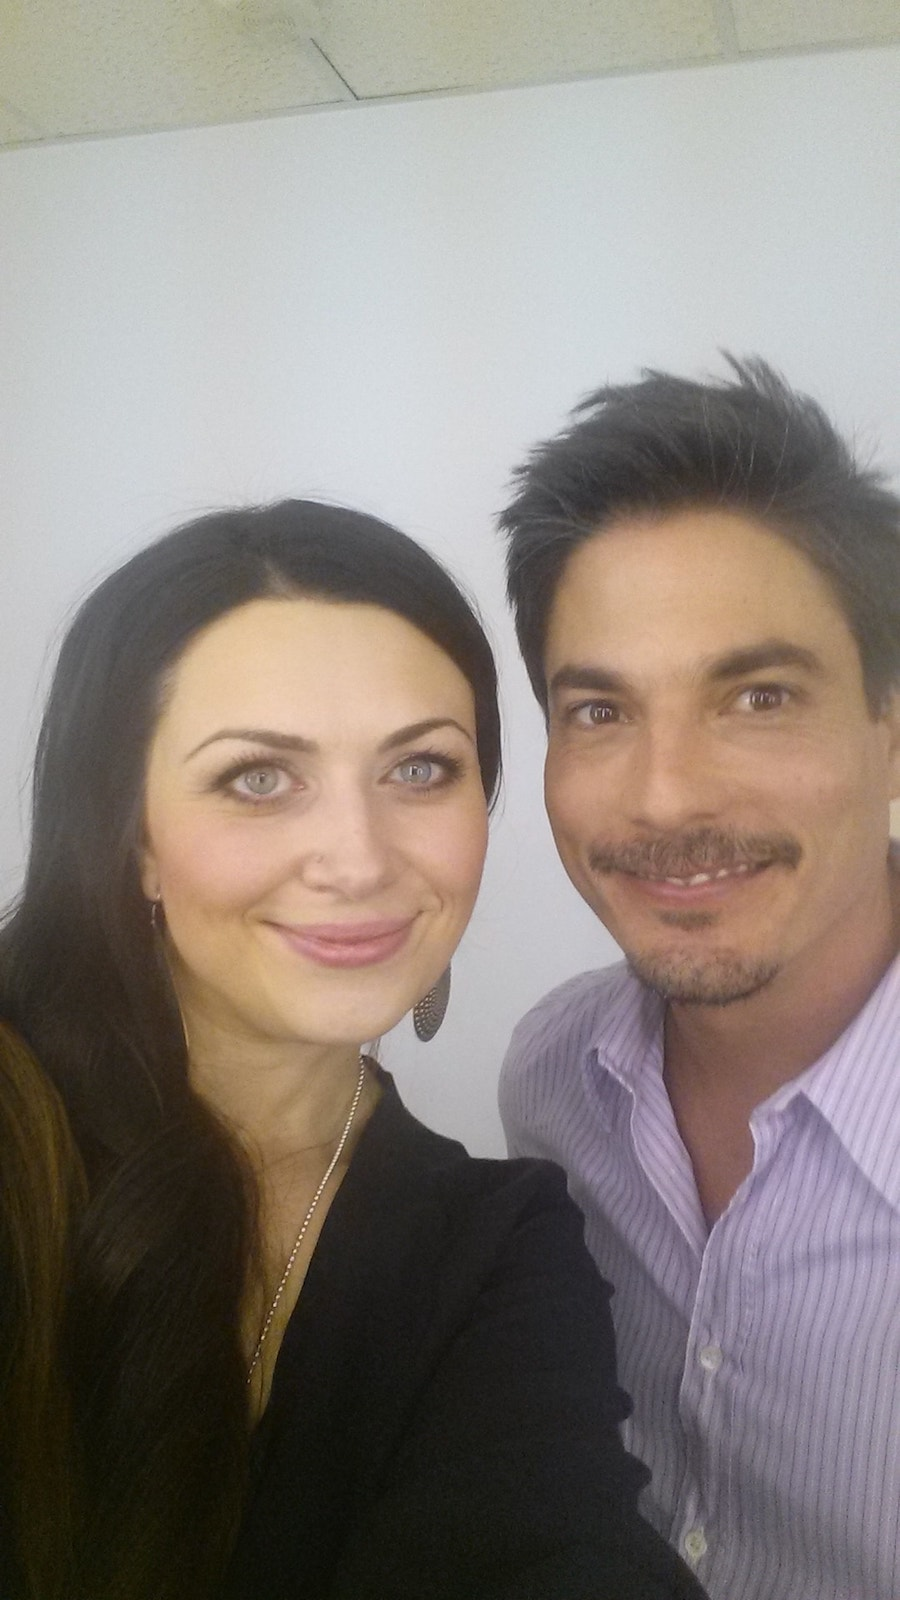 Global_Edmonton_Makeup_Artists_YEG_Eclectica_Beauty_Studio_Astrid_Woodard_Bryan_Dattilo-min-min